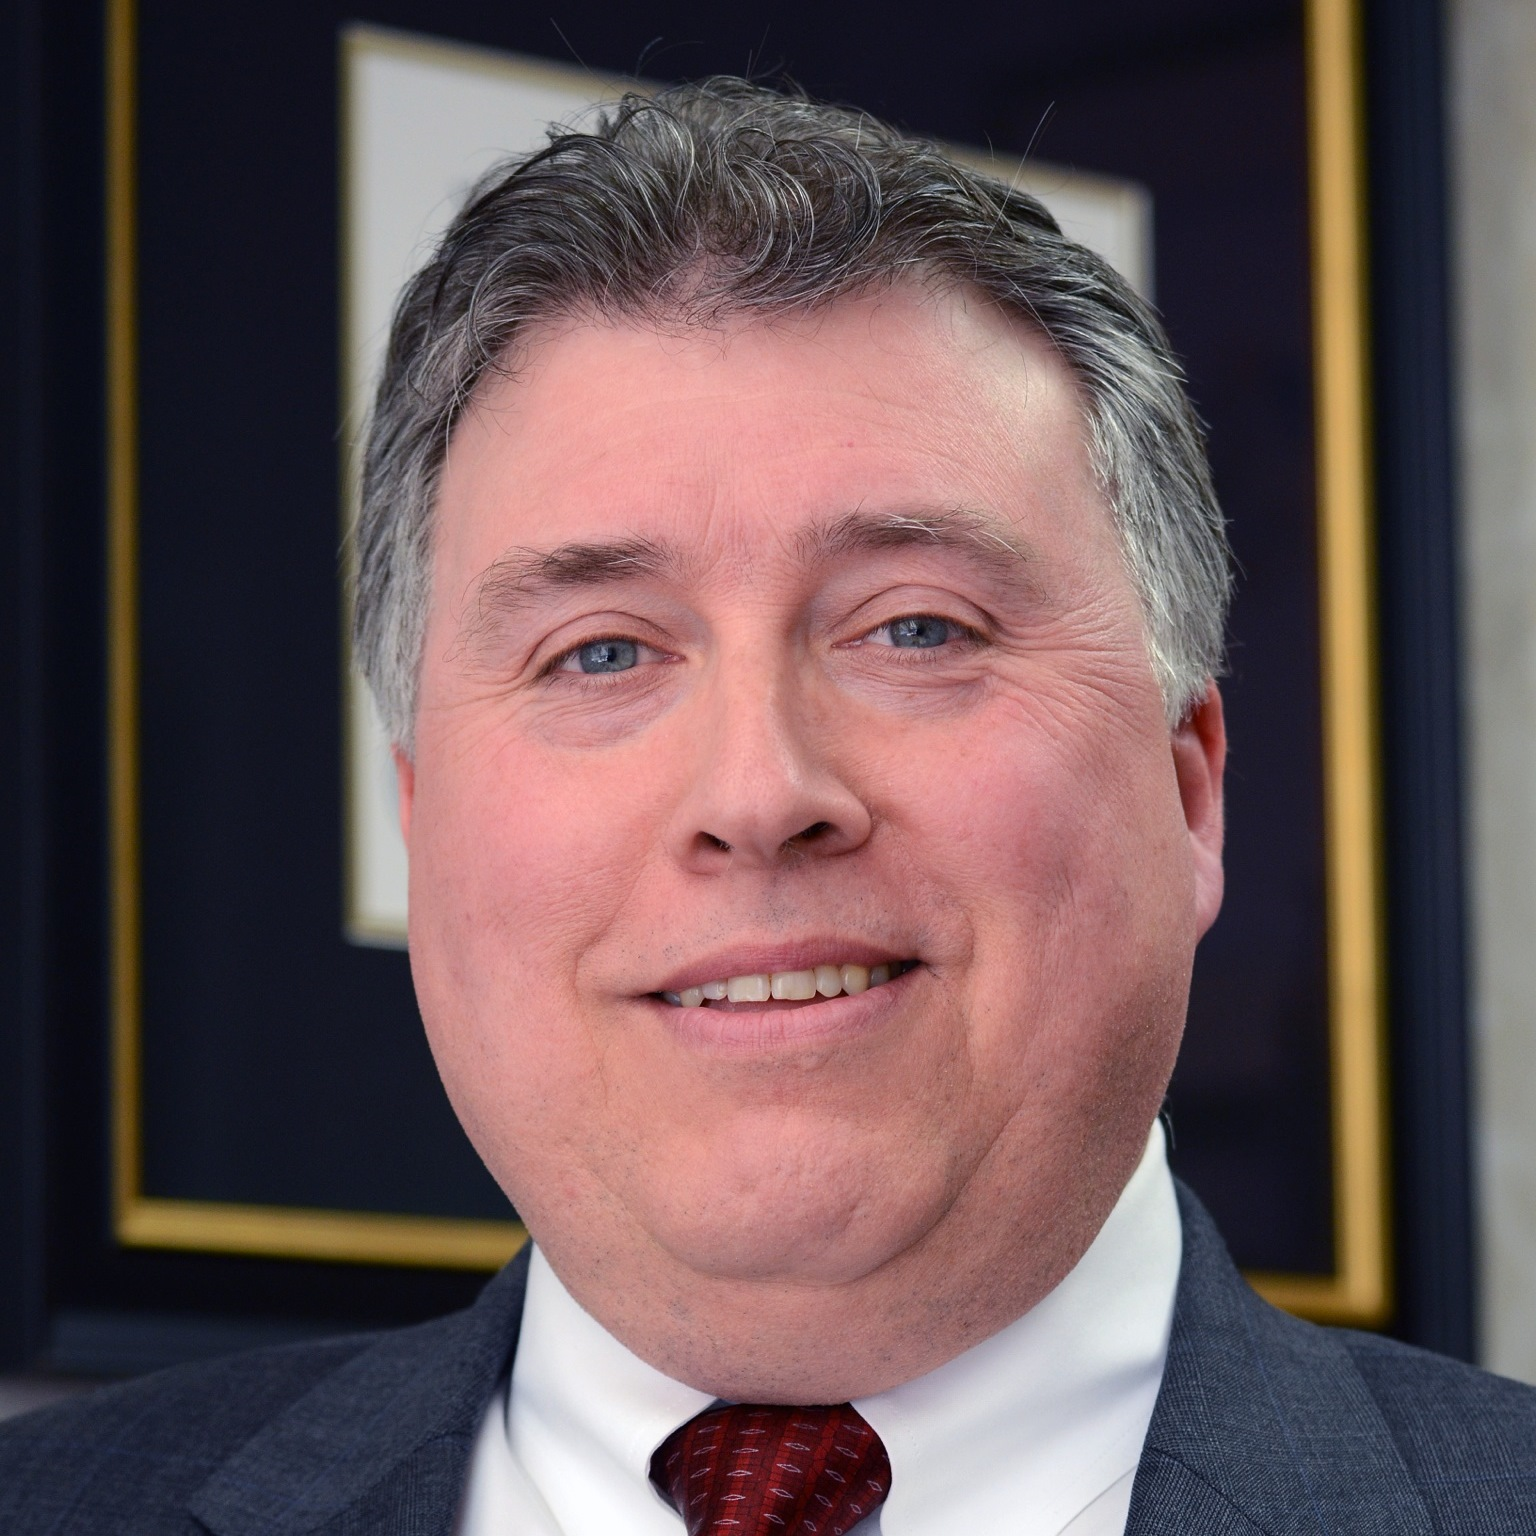 Donald Ratté, financial advisor Waterbury CT